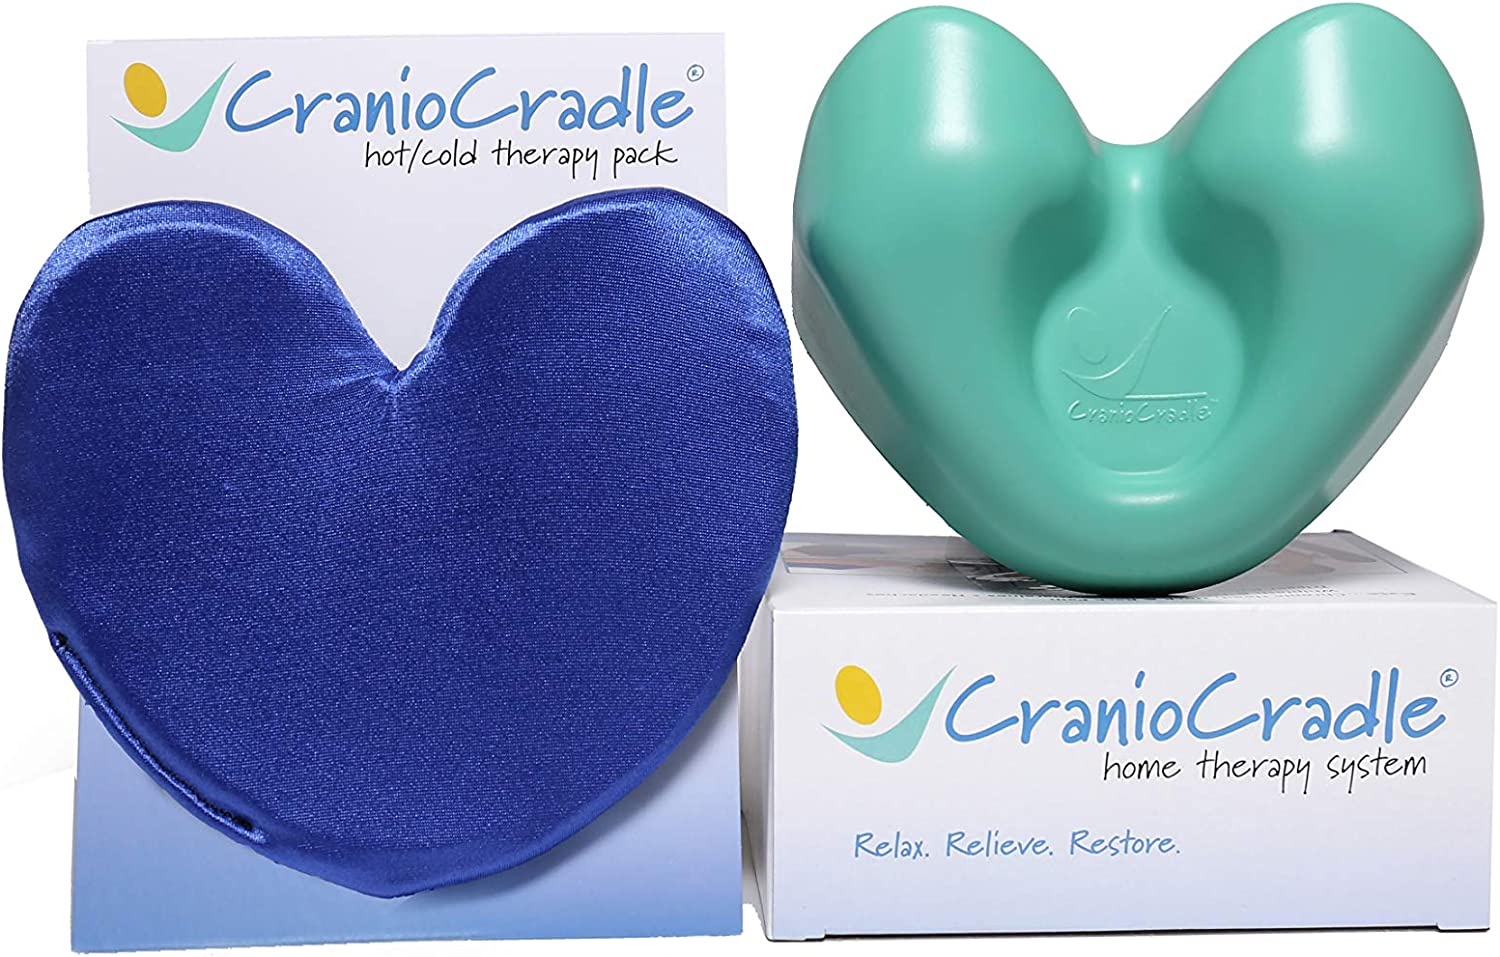 Baltimore Mall CranioCradle Ranking TOP15 Home Therapy System Hot - Qualit Pack Cold